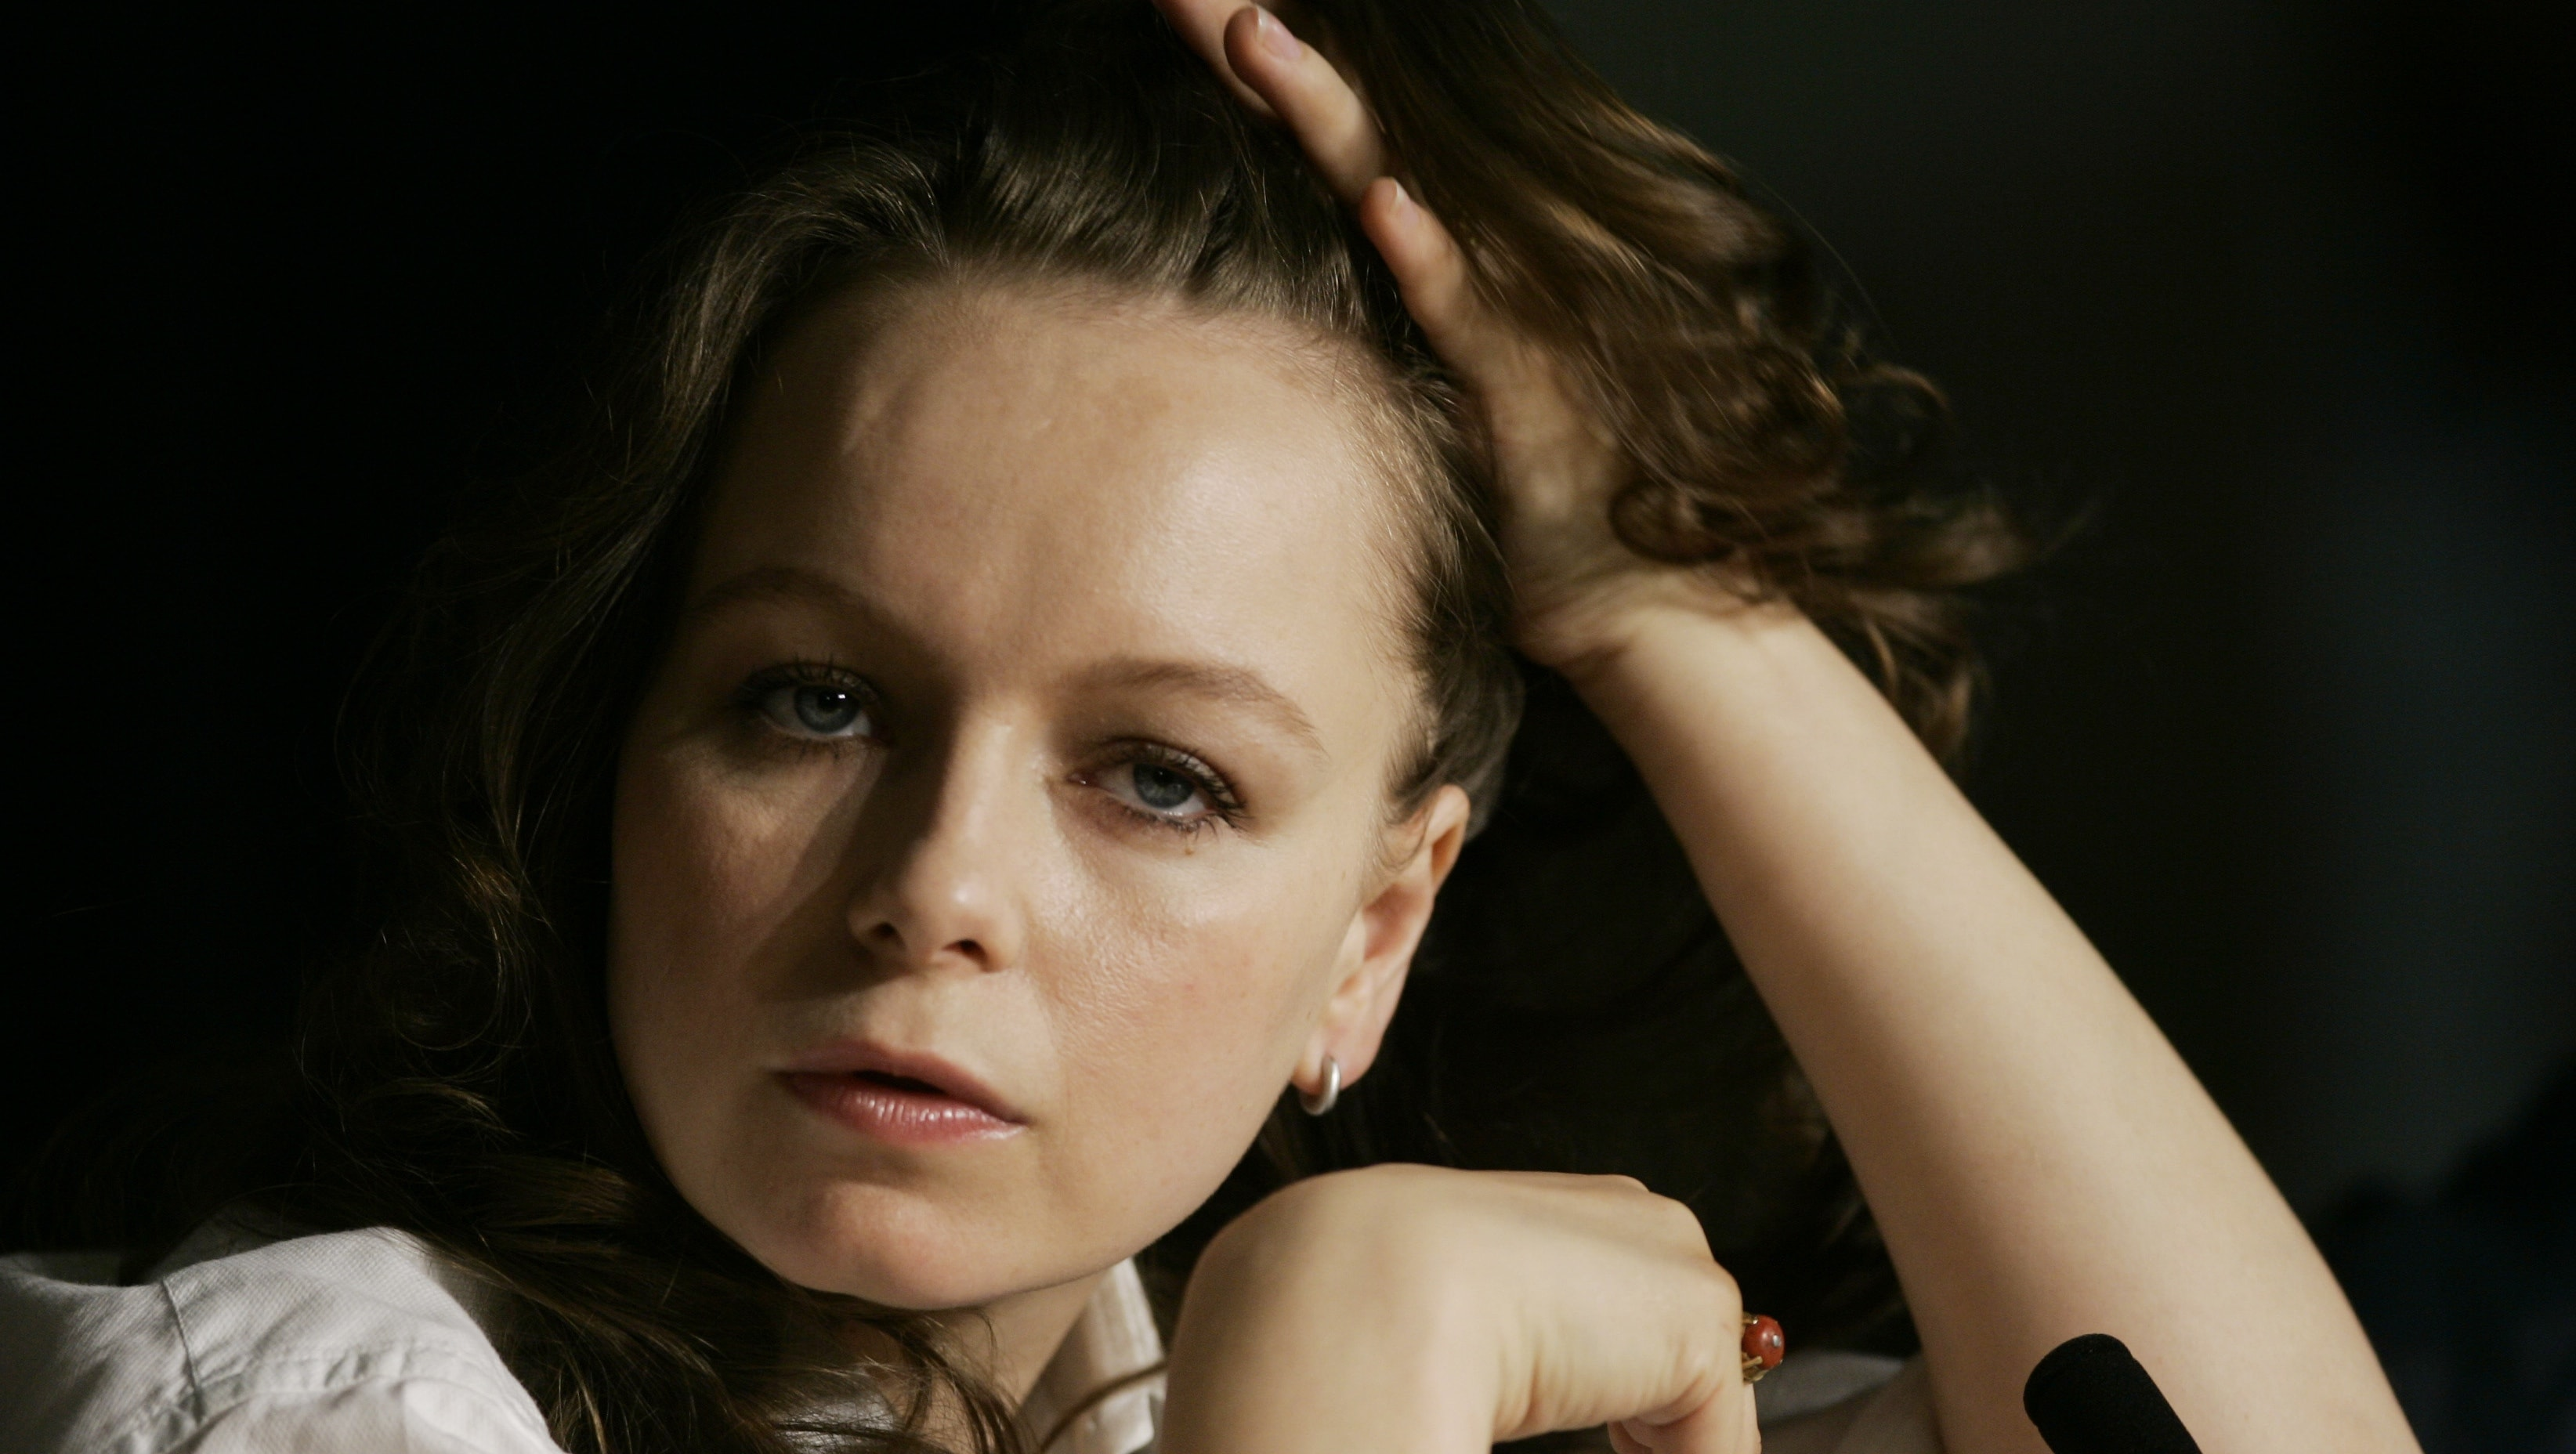 Samantha Morton (born 1977) Samantha Morton (born 1977) new picture